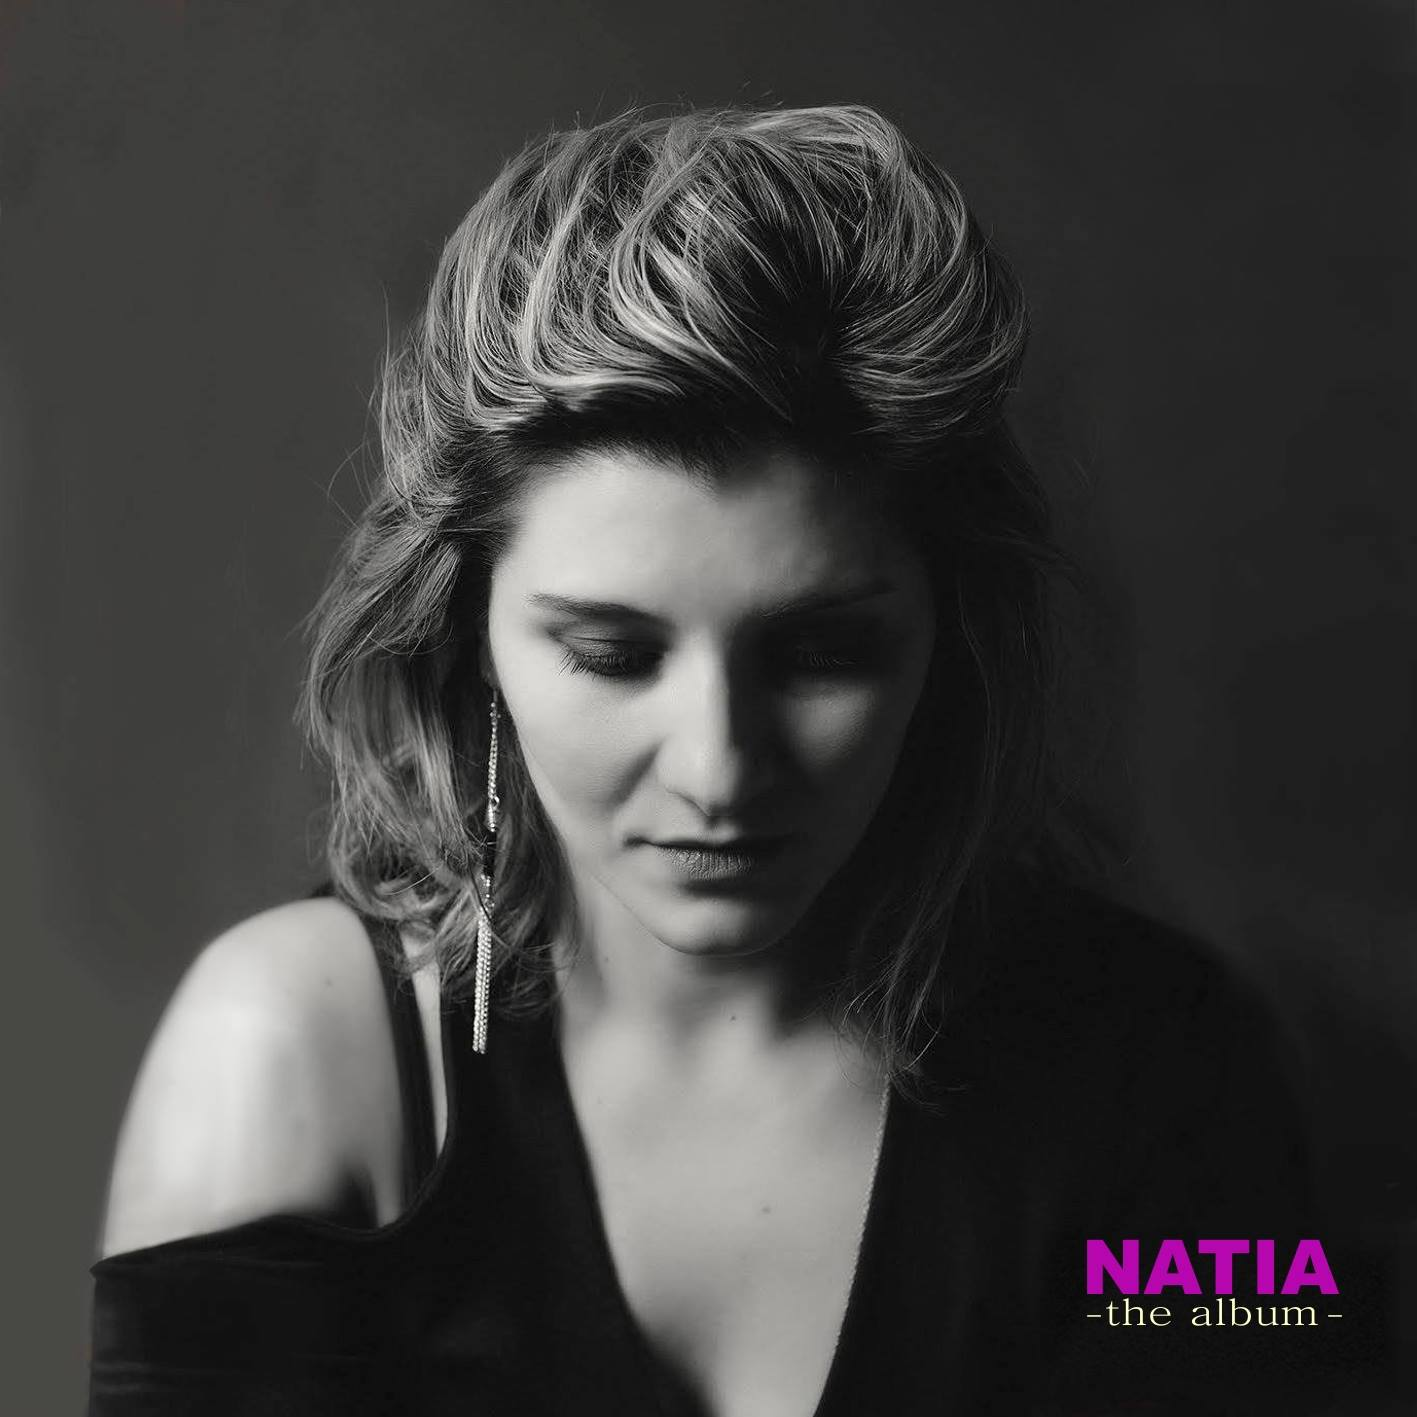 Natia the album